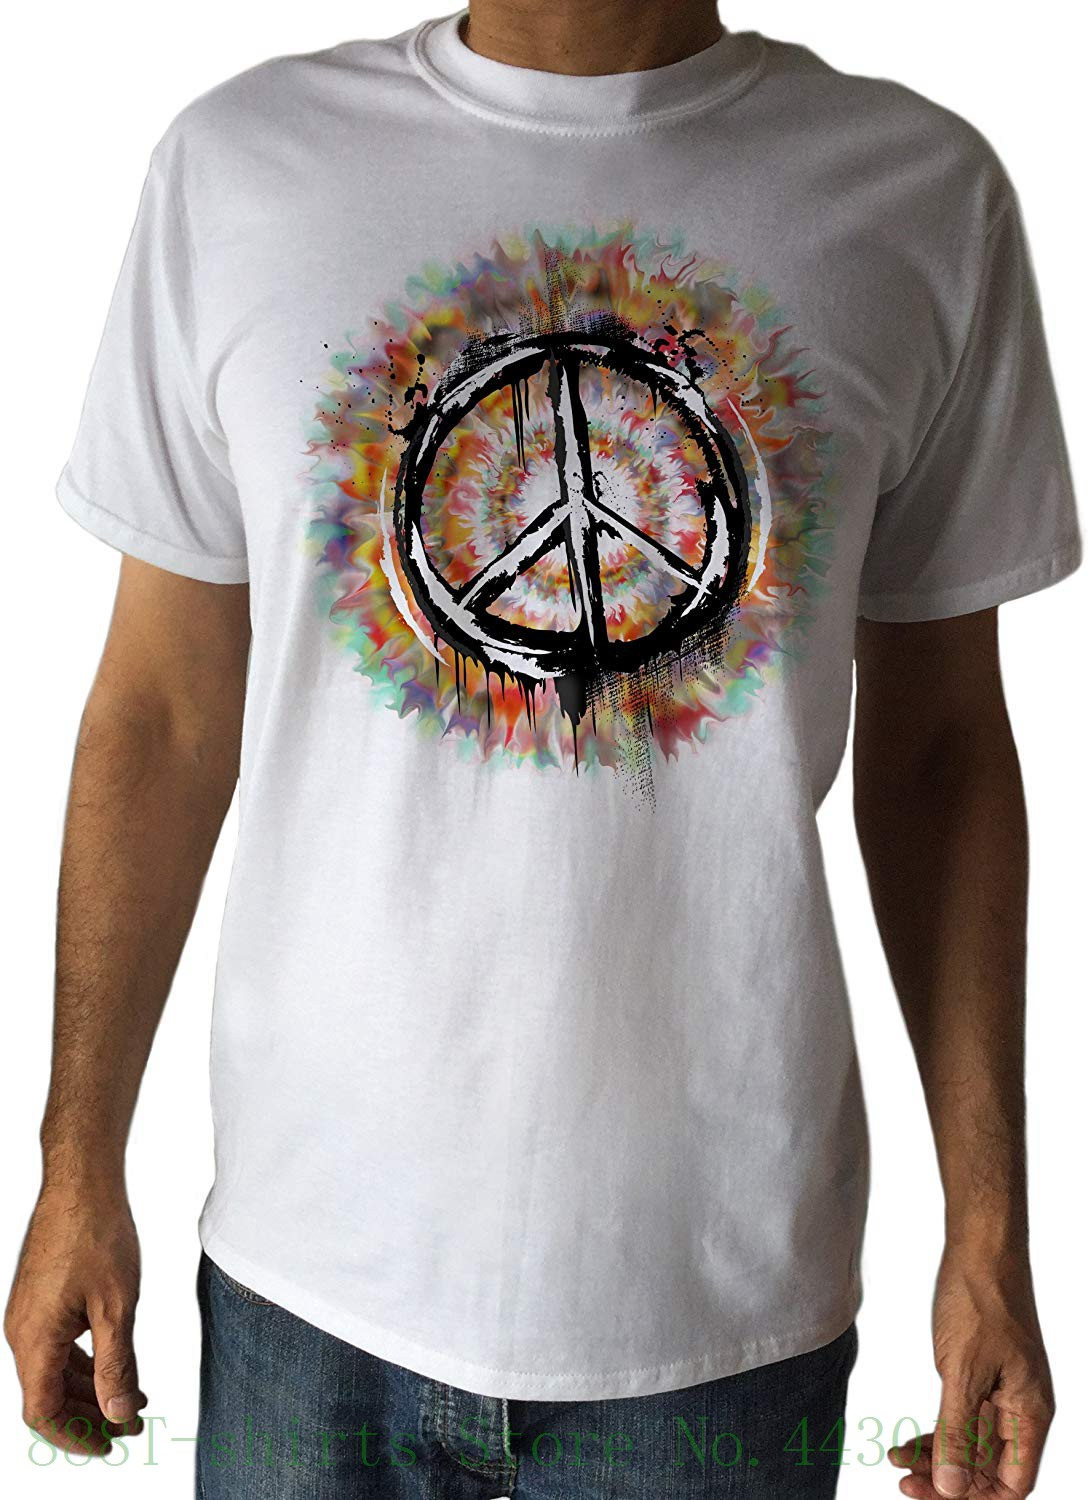 For Peace T For Military Man Cnd Dye Peace Logo Retro And Against Hippy - Warfare Panel C17 - 2 Short Sleeve T-shirt